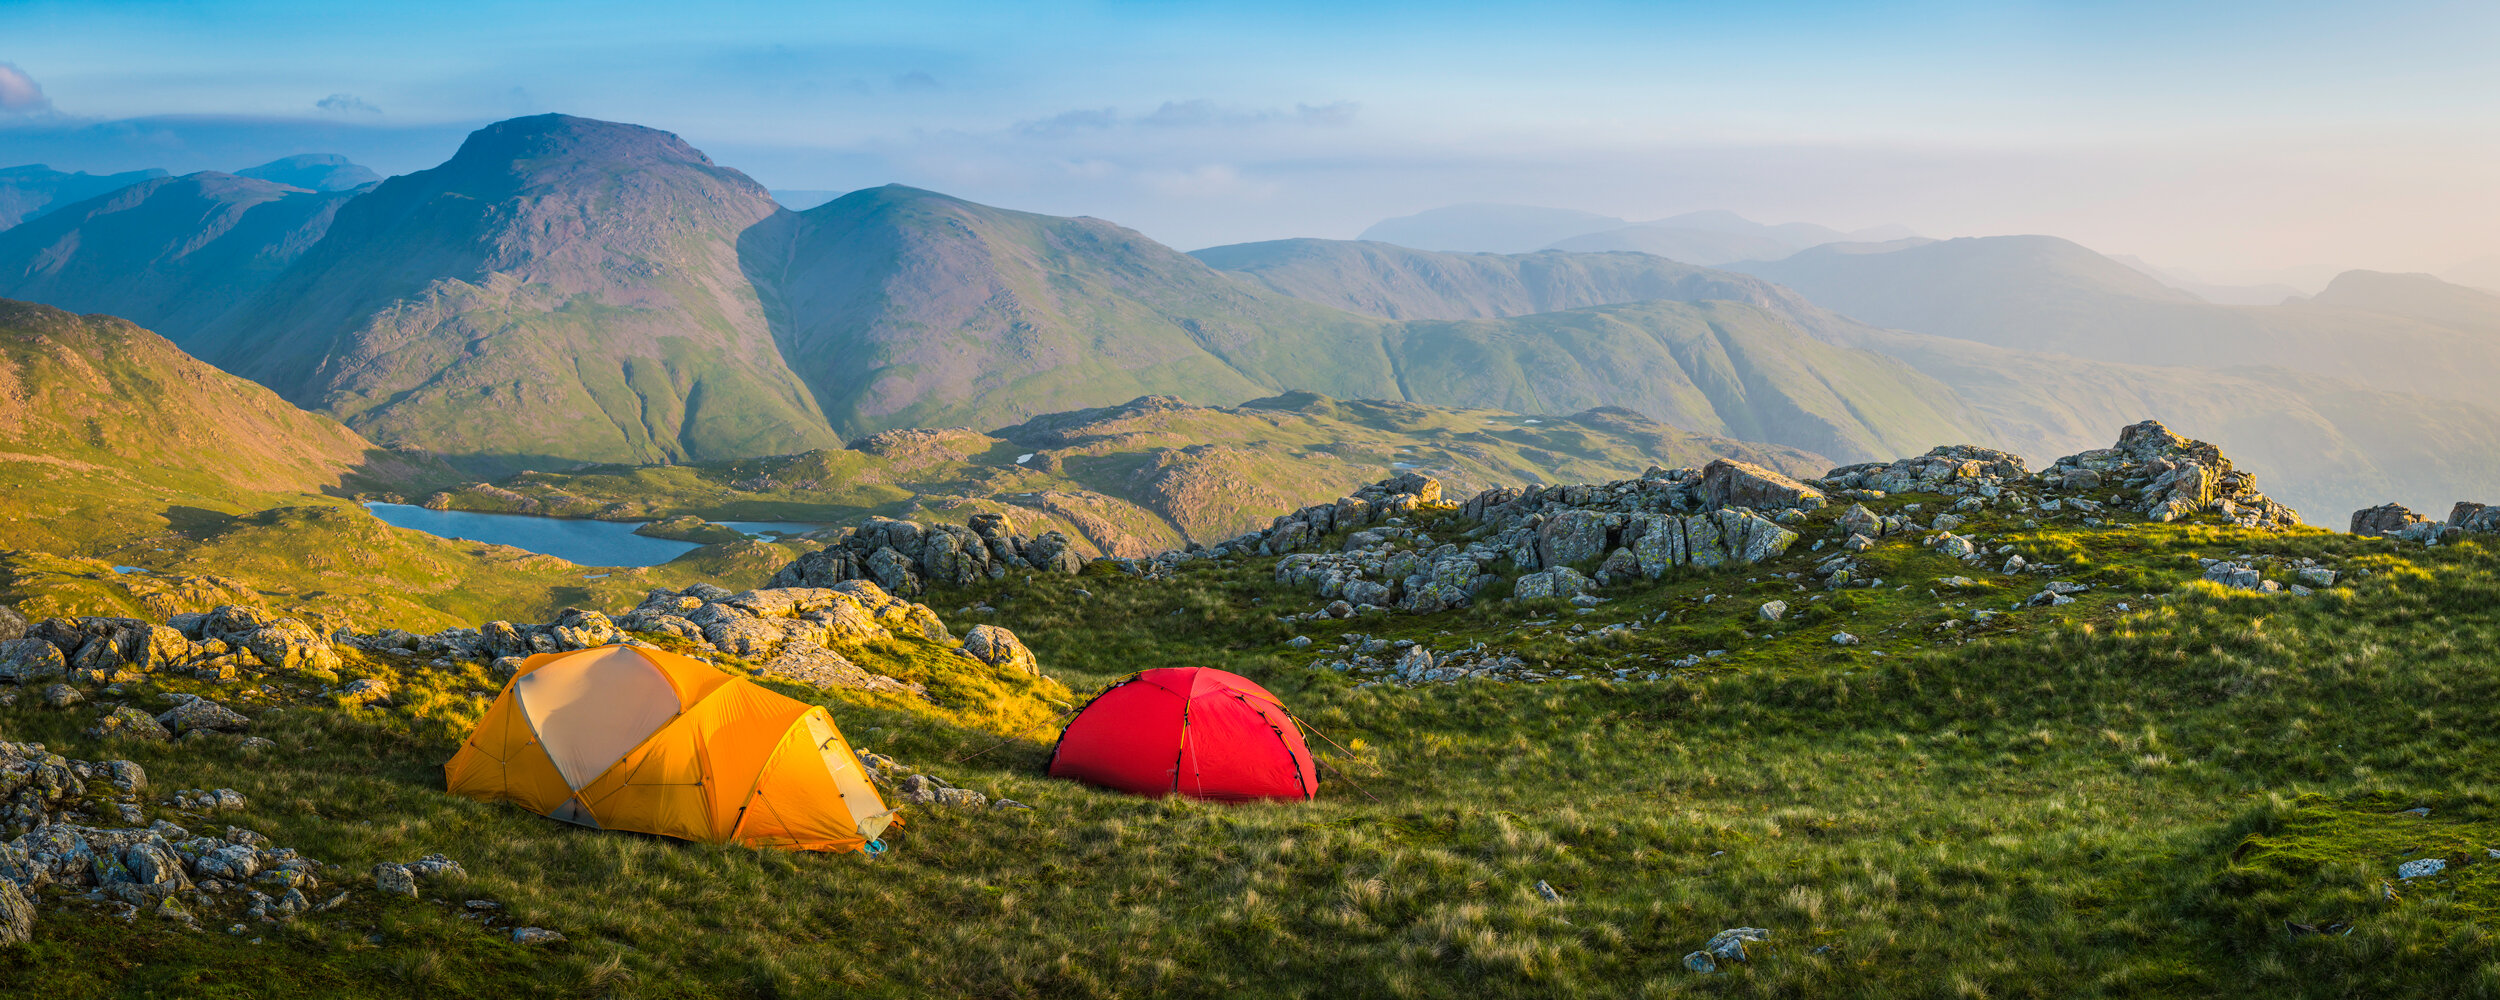 Wild Camping Kit List — Large Outdoors